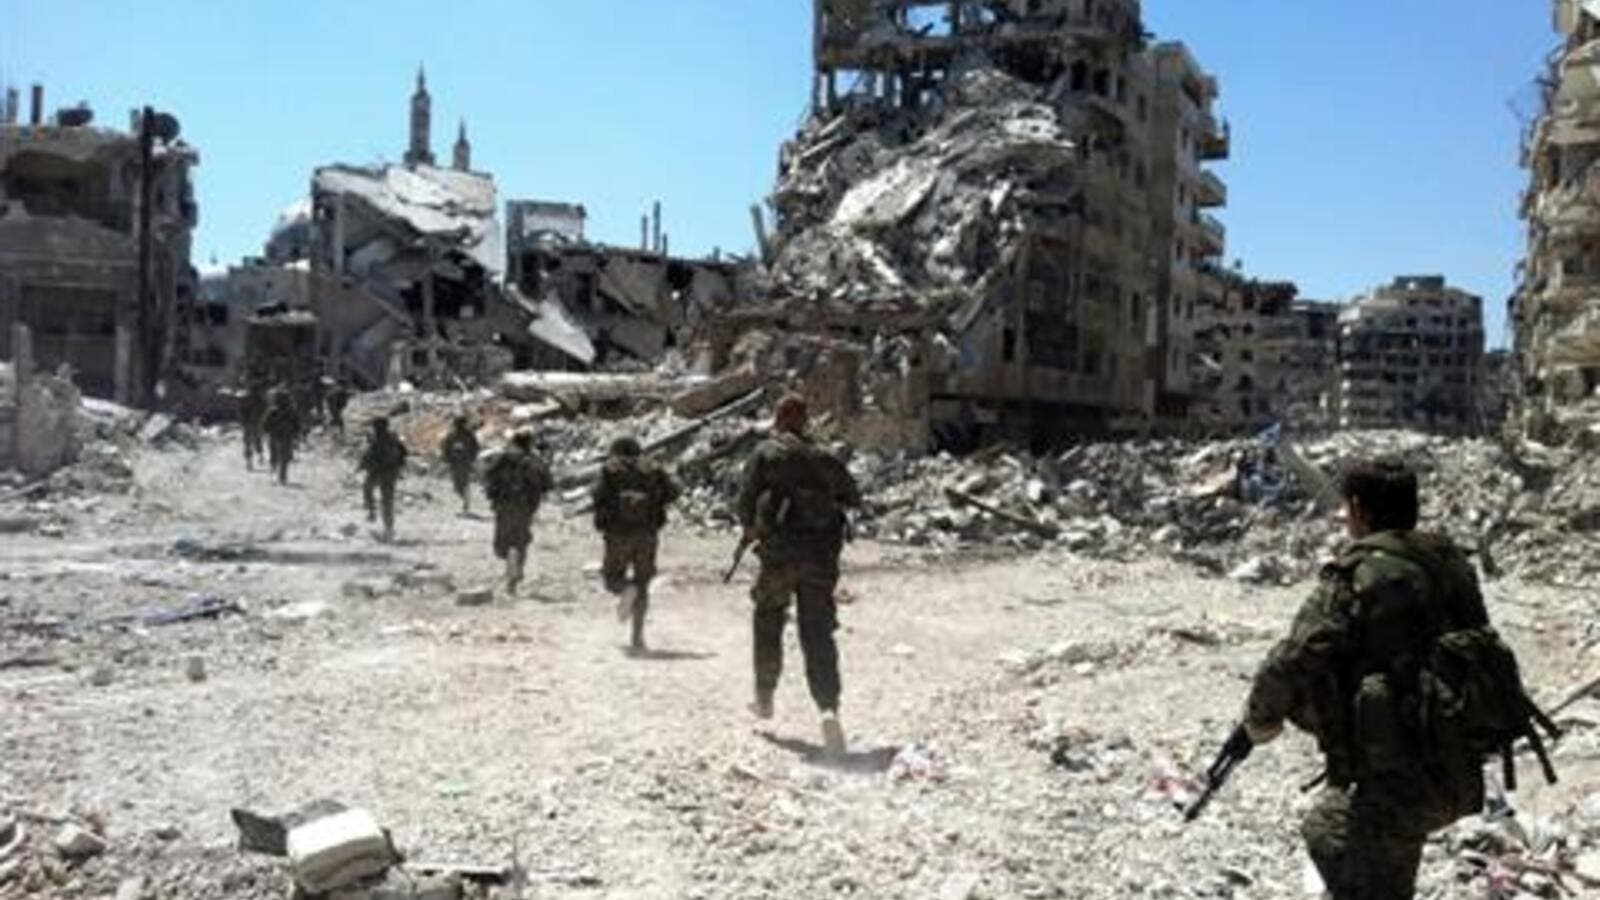 The Syrian army on Tuesday entered rebel-held neighborhoods in Homs. (AFP/File)